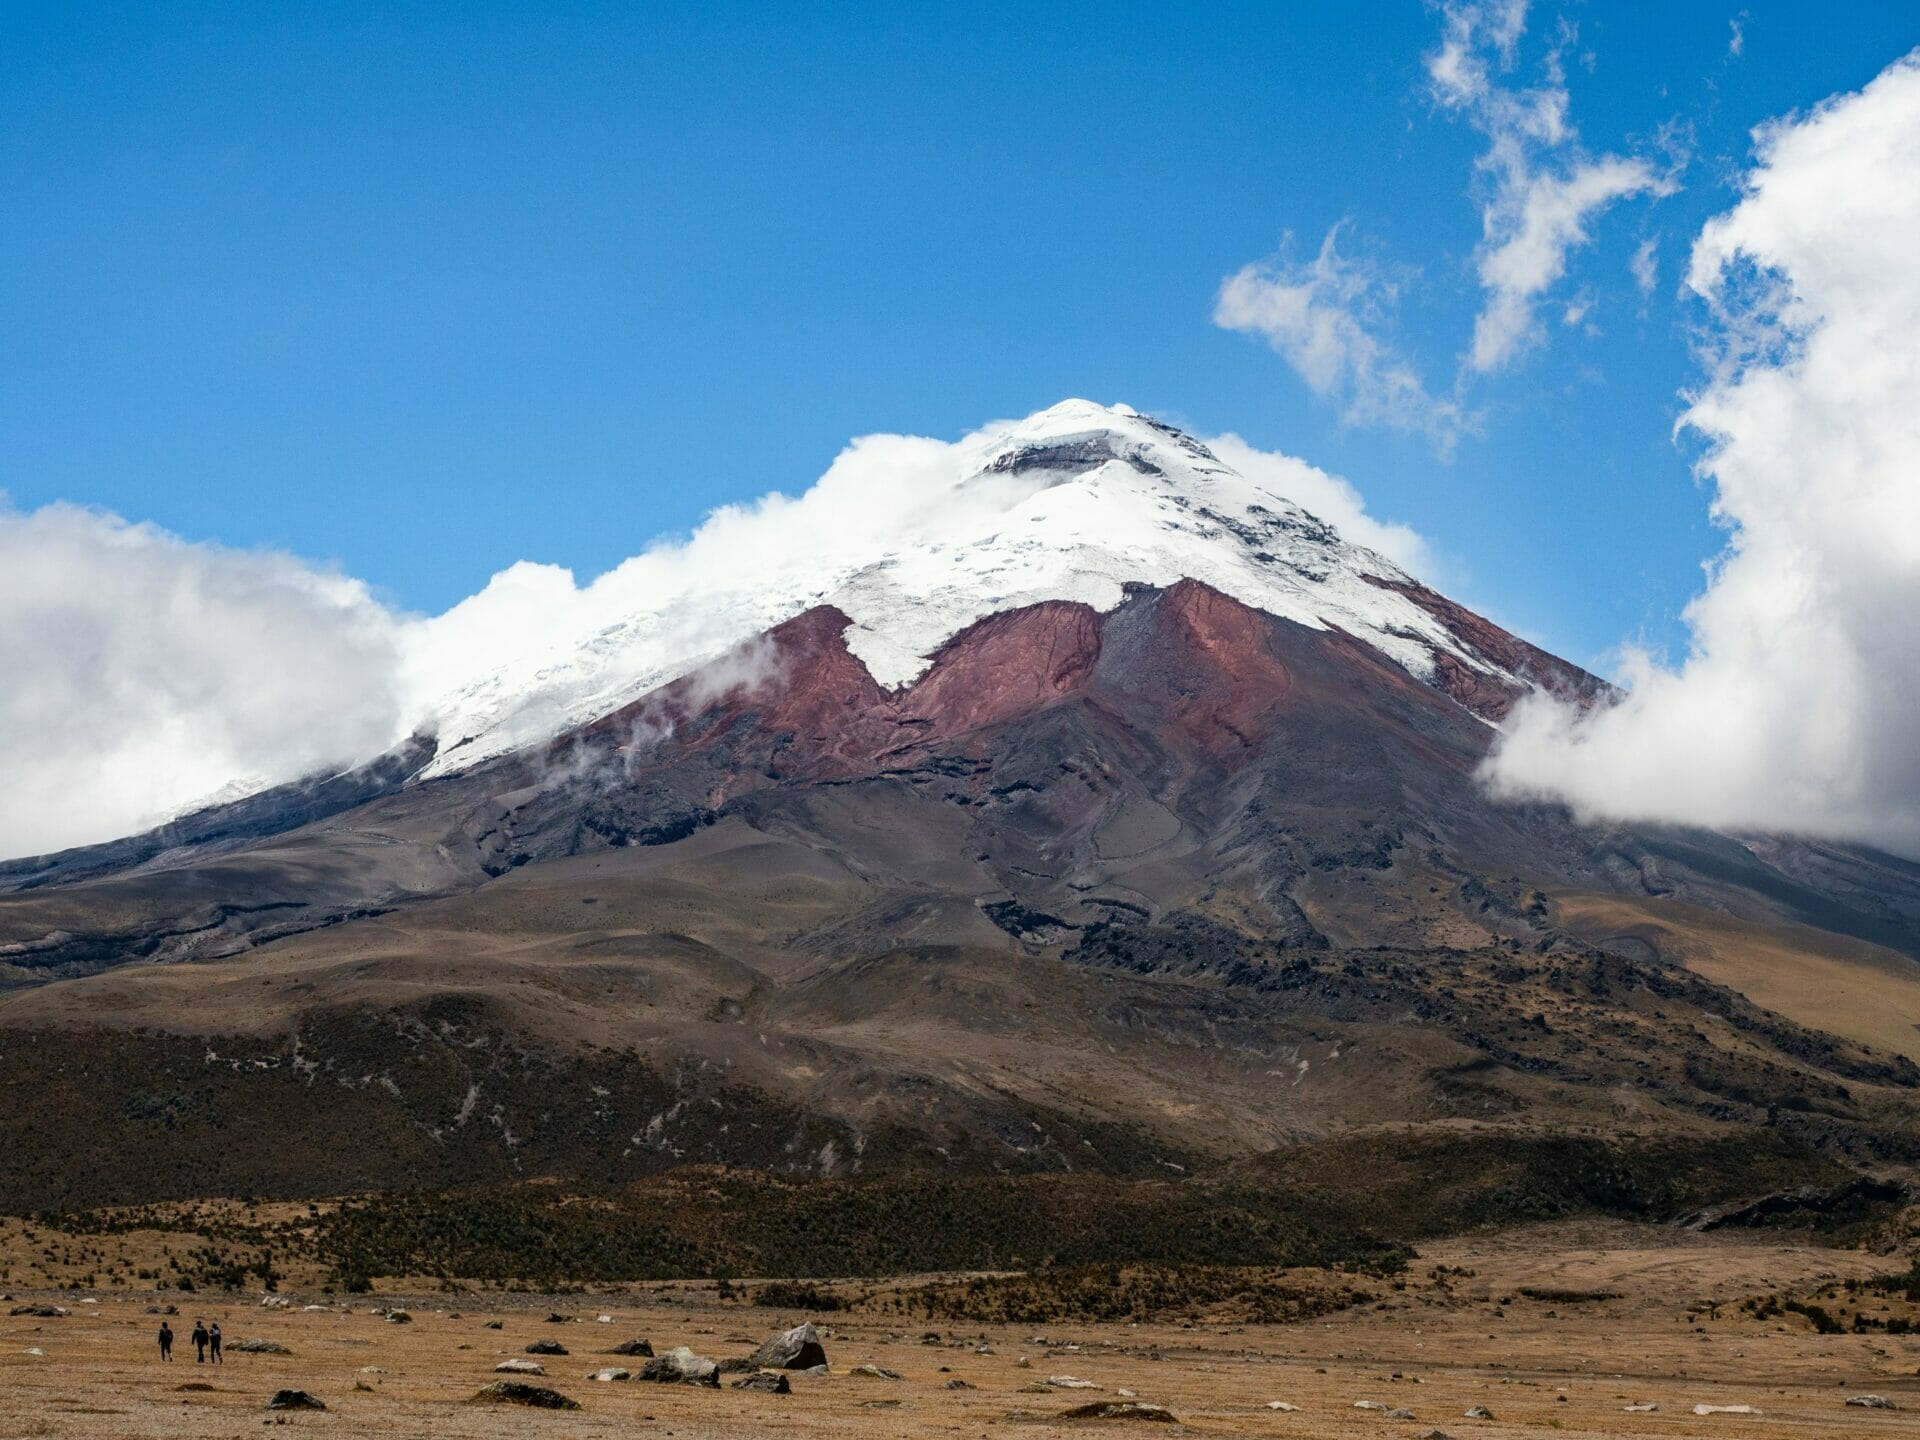 View of Cotopaxi Volcano in Ecuador